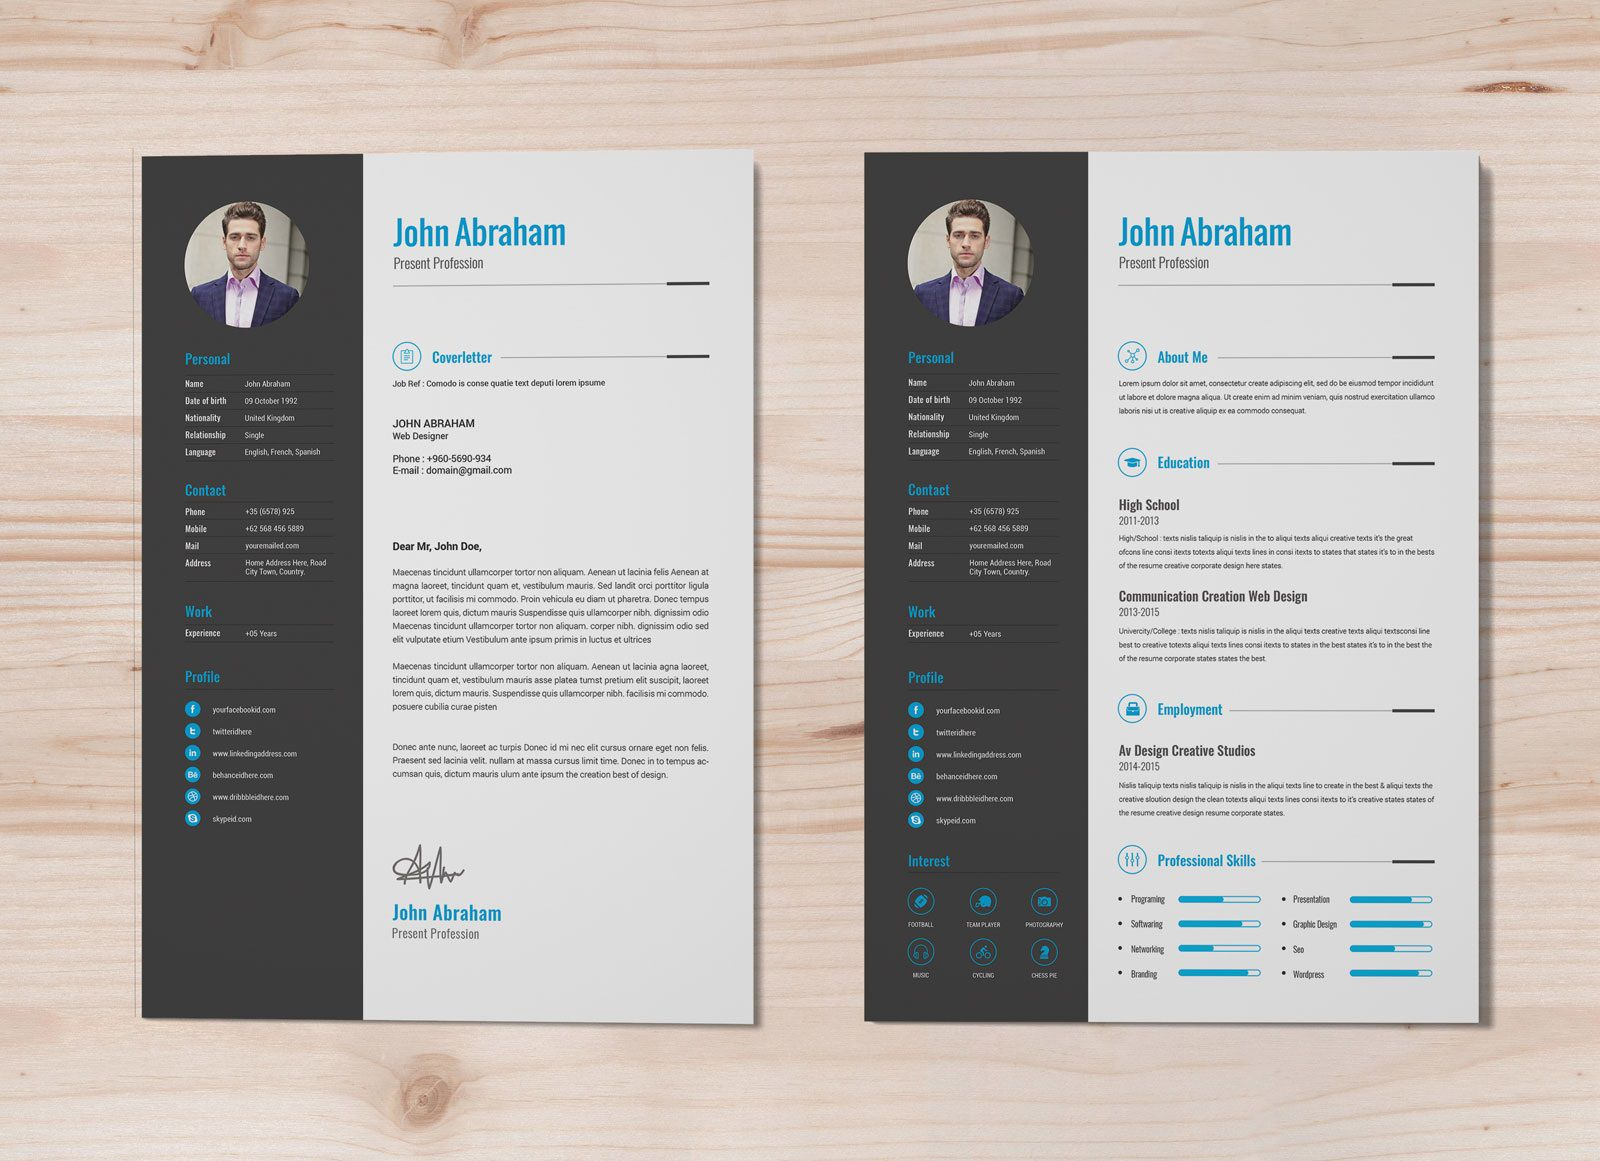 006 Archaicawful Best Professional Resume Template Highest Clarity  Reddit 2020 DownloadFull